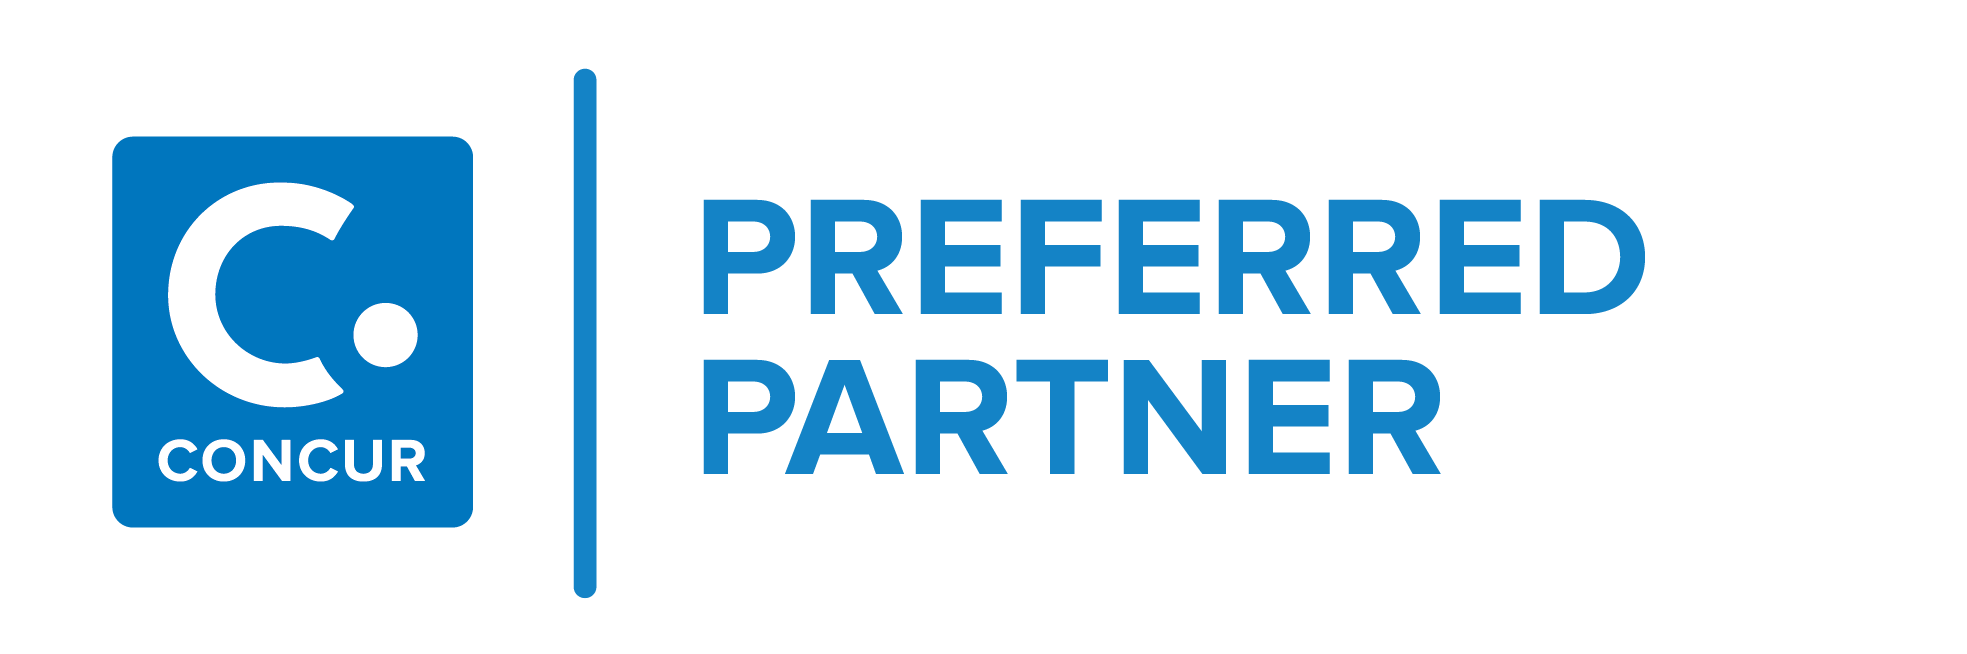 Concur Preferred Partner.png